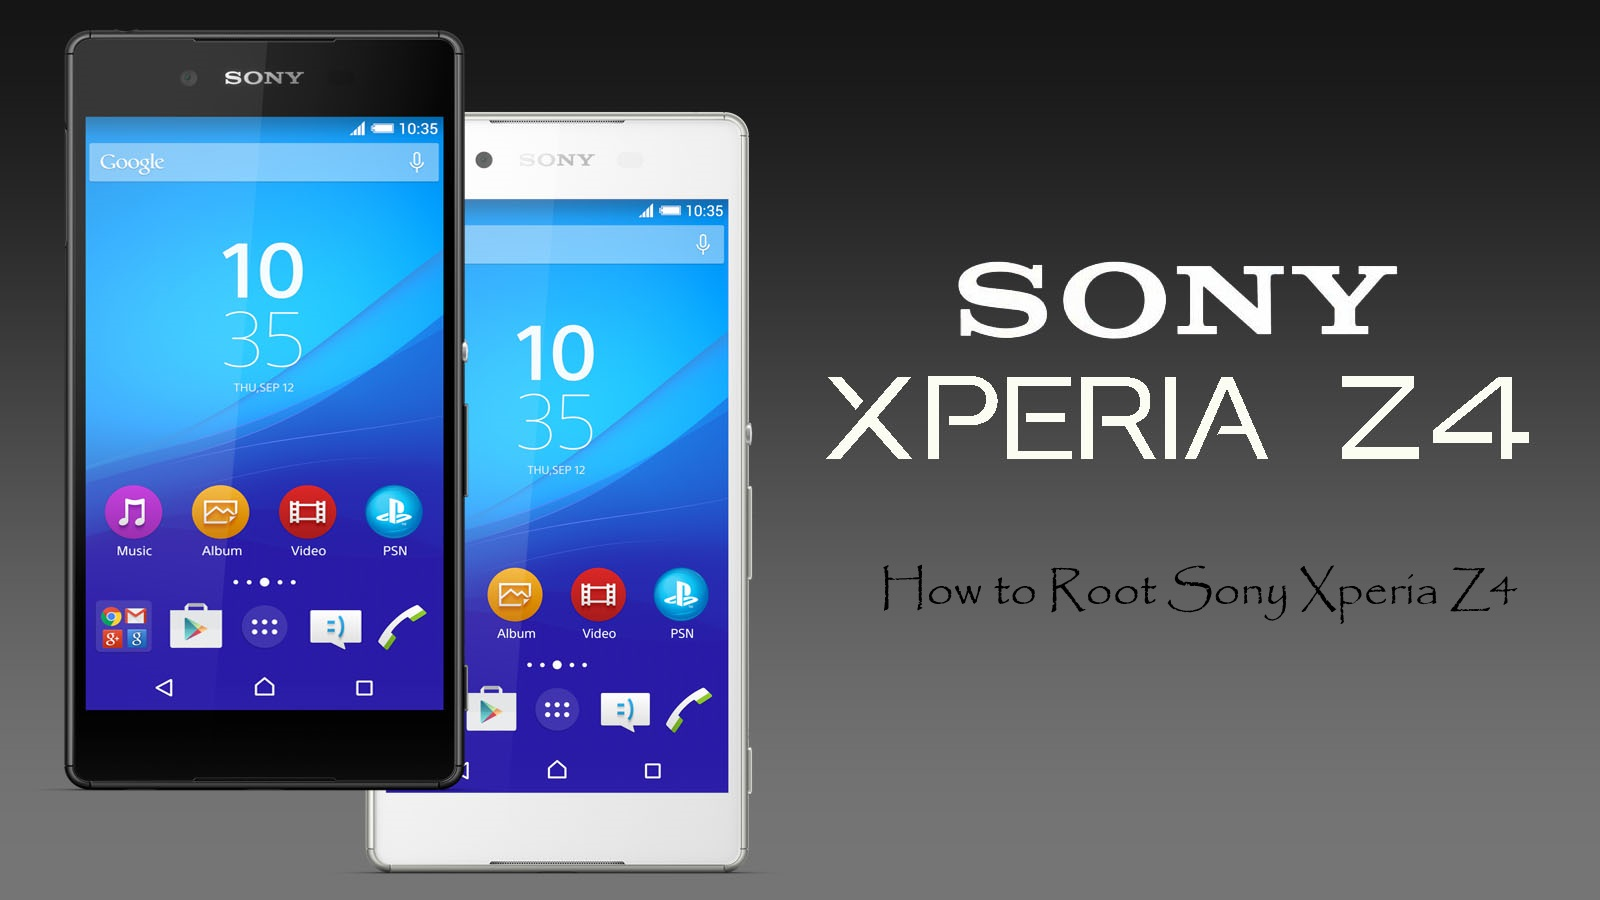 How To Easily Root Sony Xperia Z4 - Root android